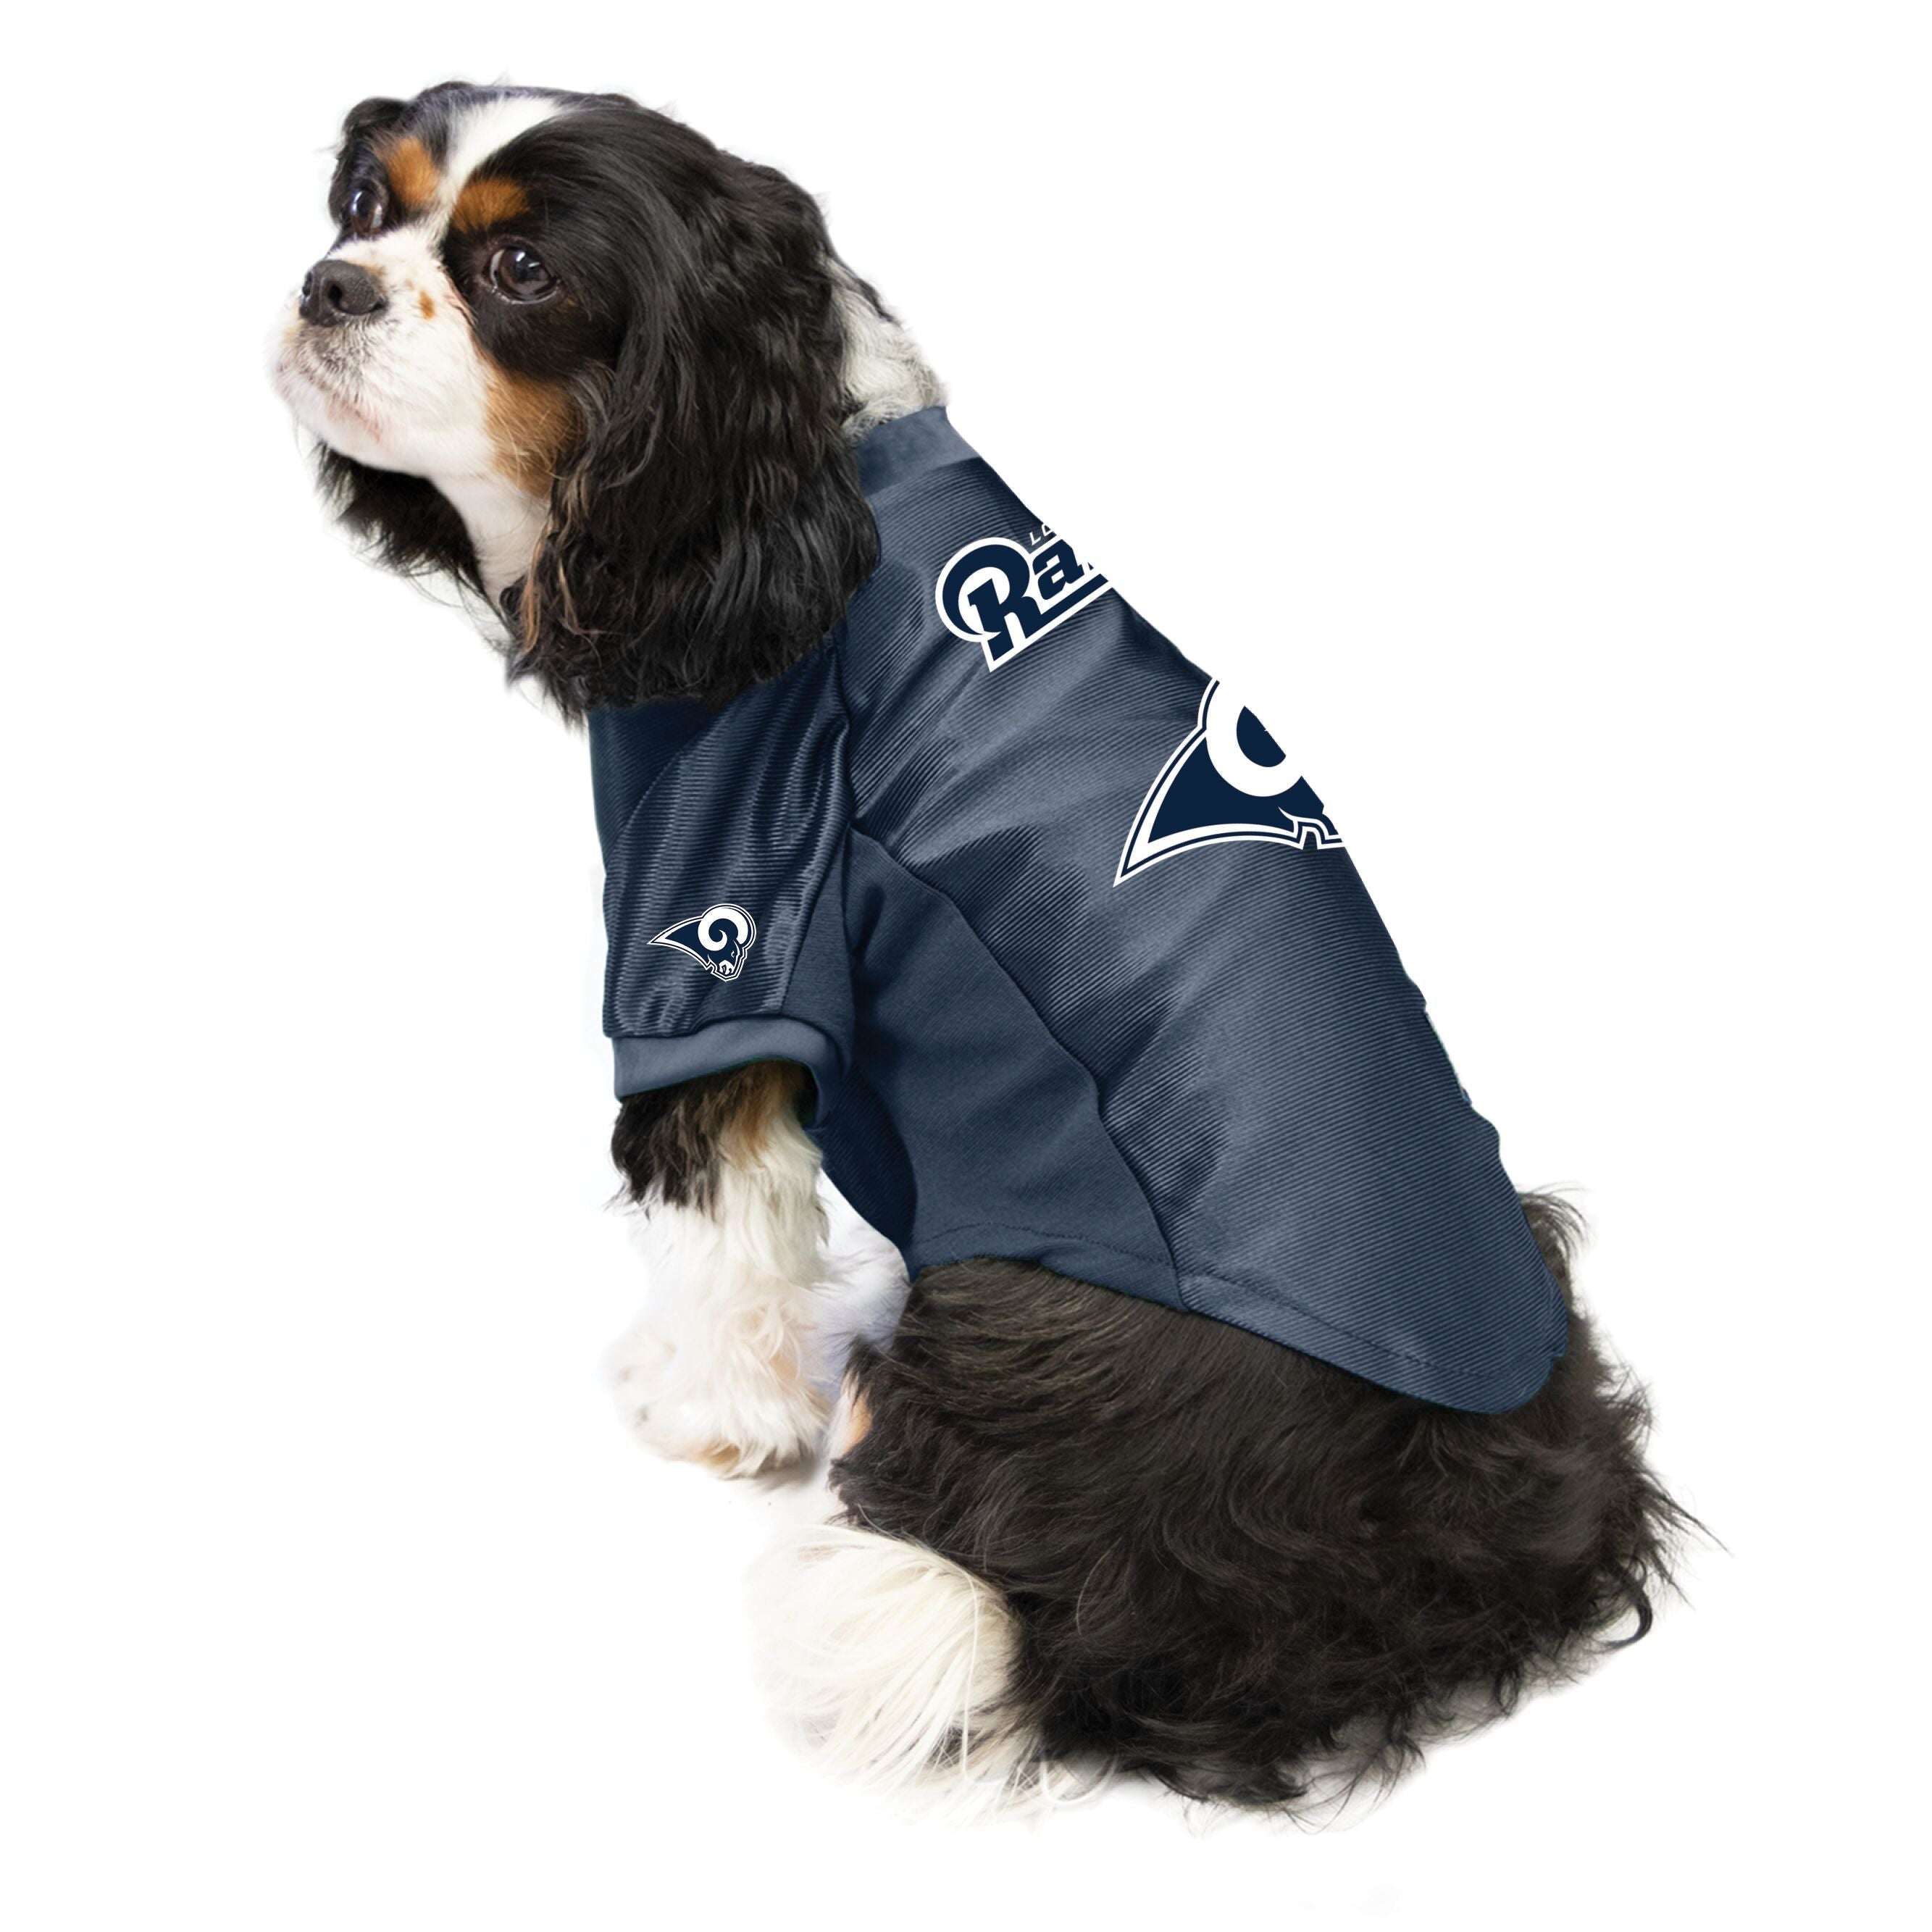 Rams Outfit for Dogs